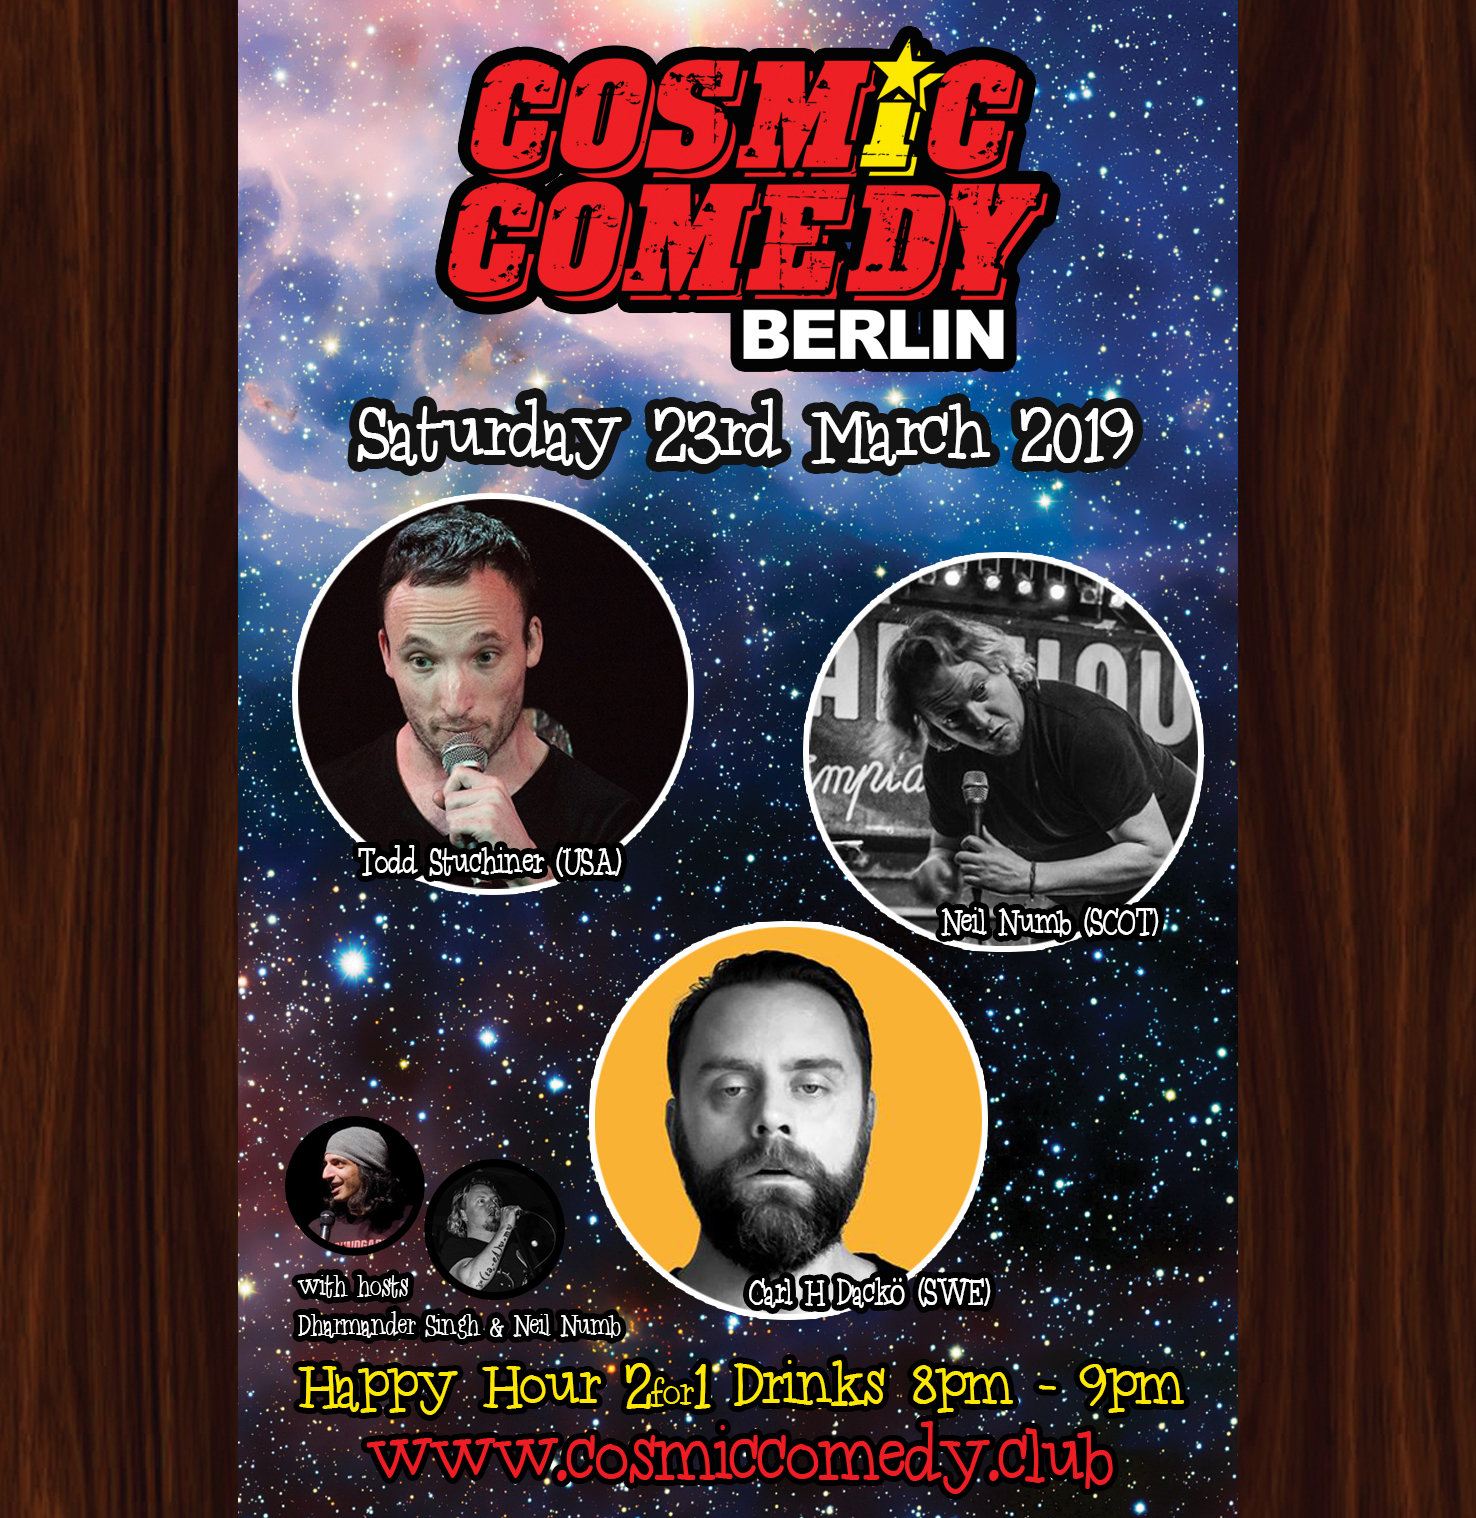 Cosmic comedy saturday 23rd march 2019